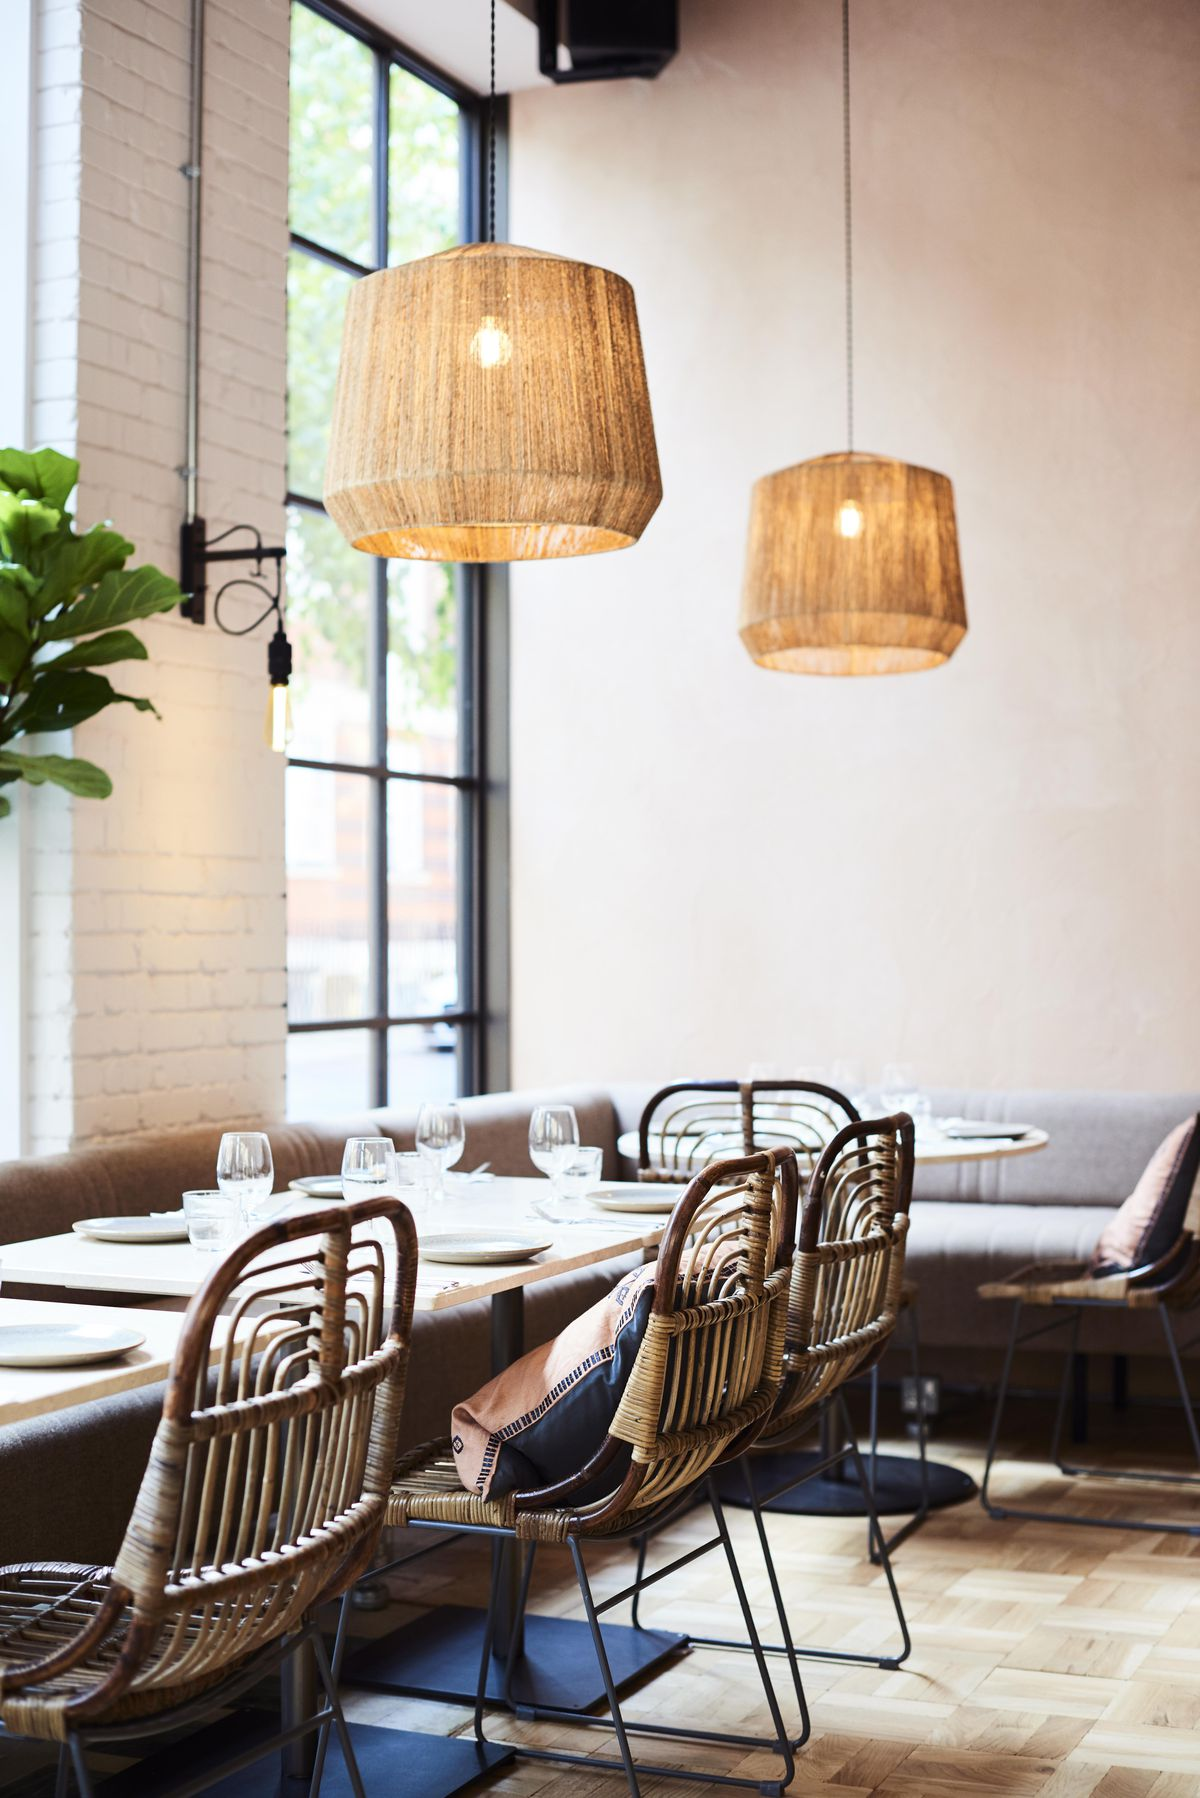 Lampshades, table settings and sofas at Caravan Coffee Roasters' new site in Fitzrovia, London